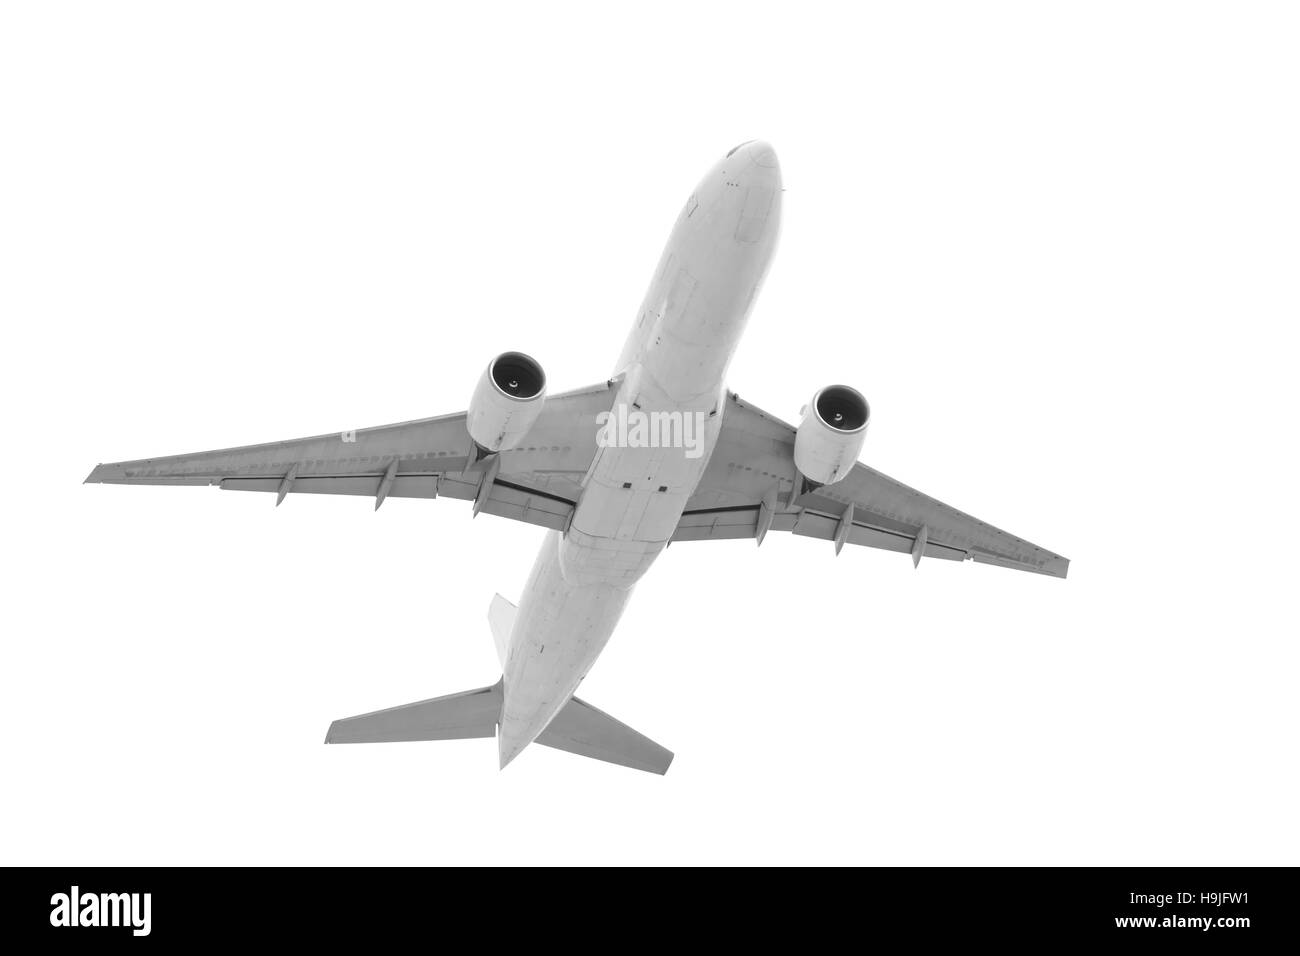 Real jet passenger aircraft taking off isolated on white background with clipping path - Stock Image